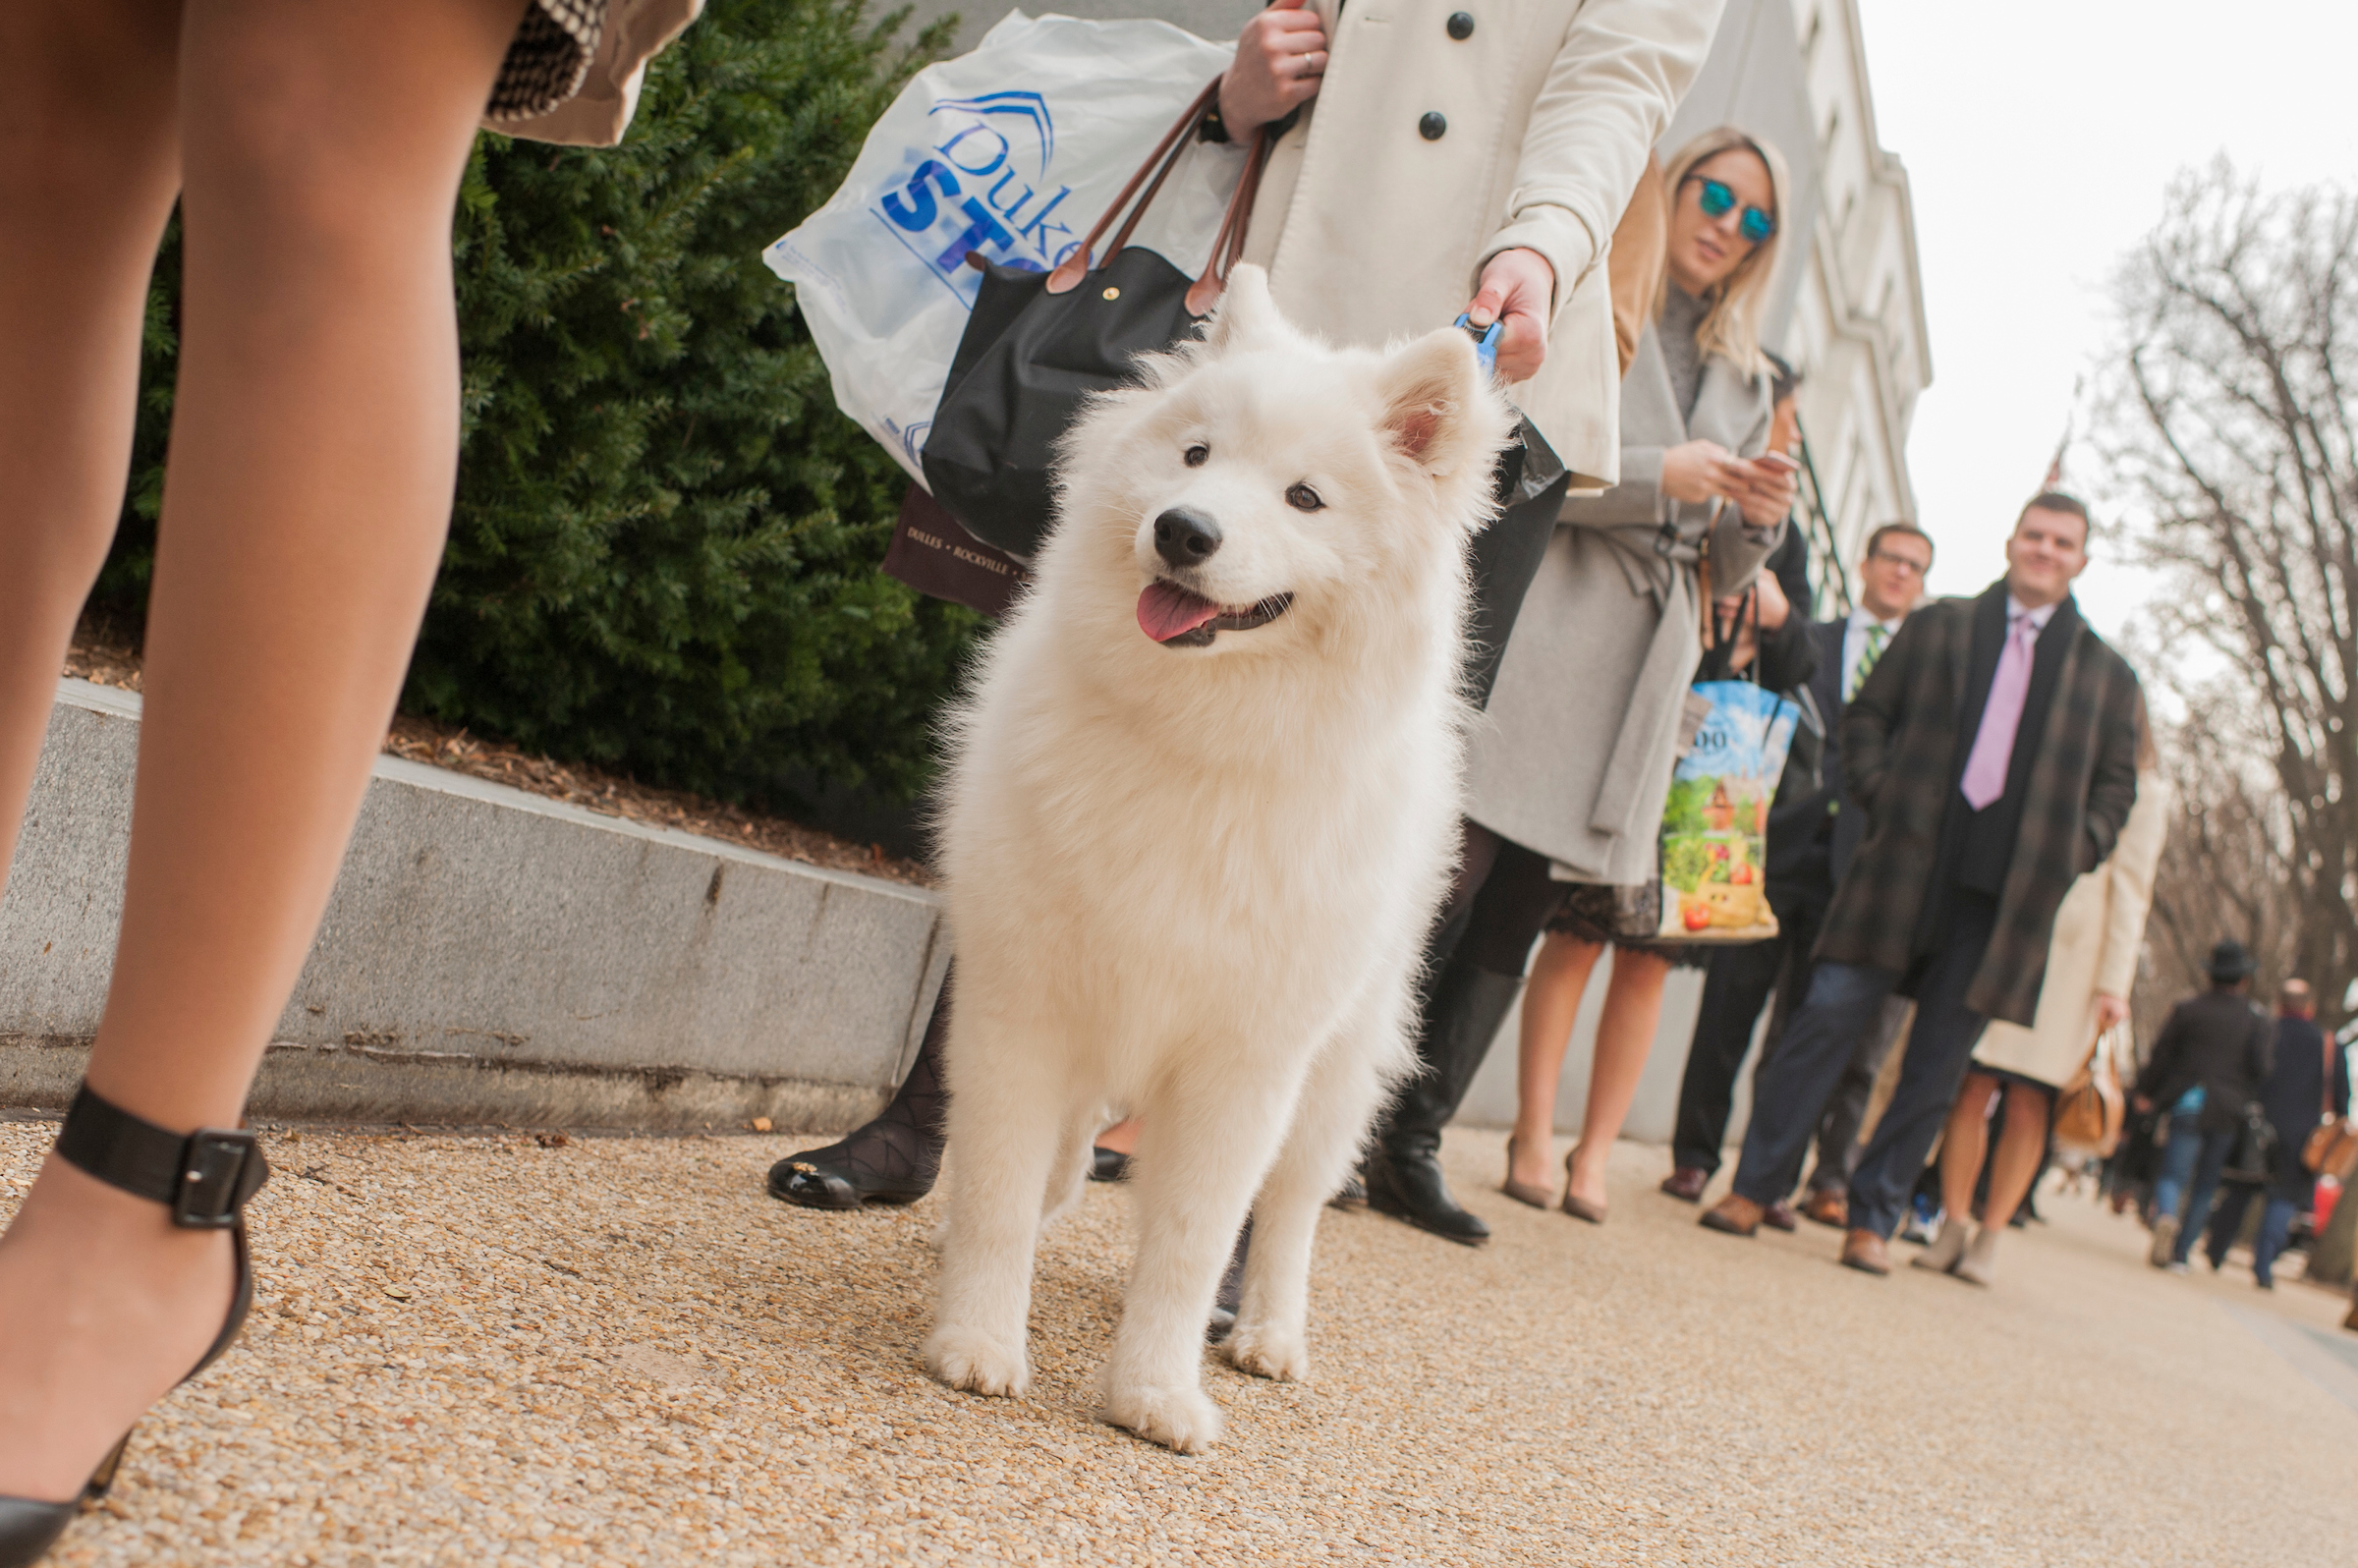 UNITED STATES - JANUARY 22: Pippen, a Samoyed, Hill staffers and others wait in a long line to enter Dirksen Building as only certain doors to the Senate office buildings were open while Congress works to end the government shutdown on January 22, 2018. (Photo By Tom Williams/CQ Roll Call)